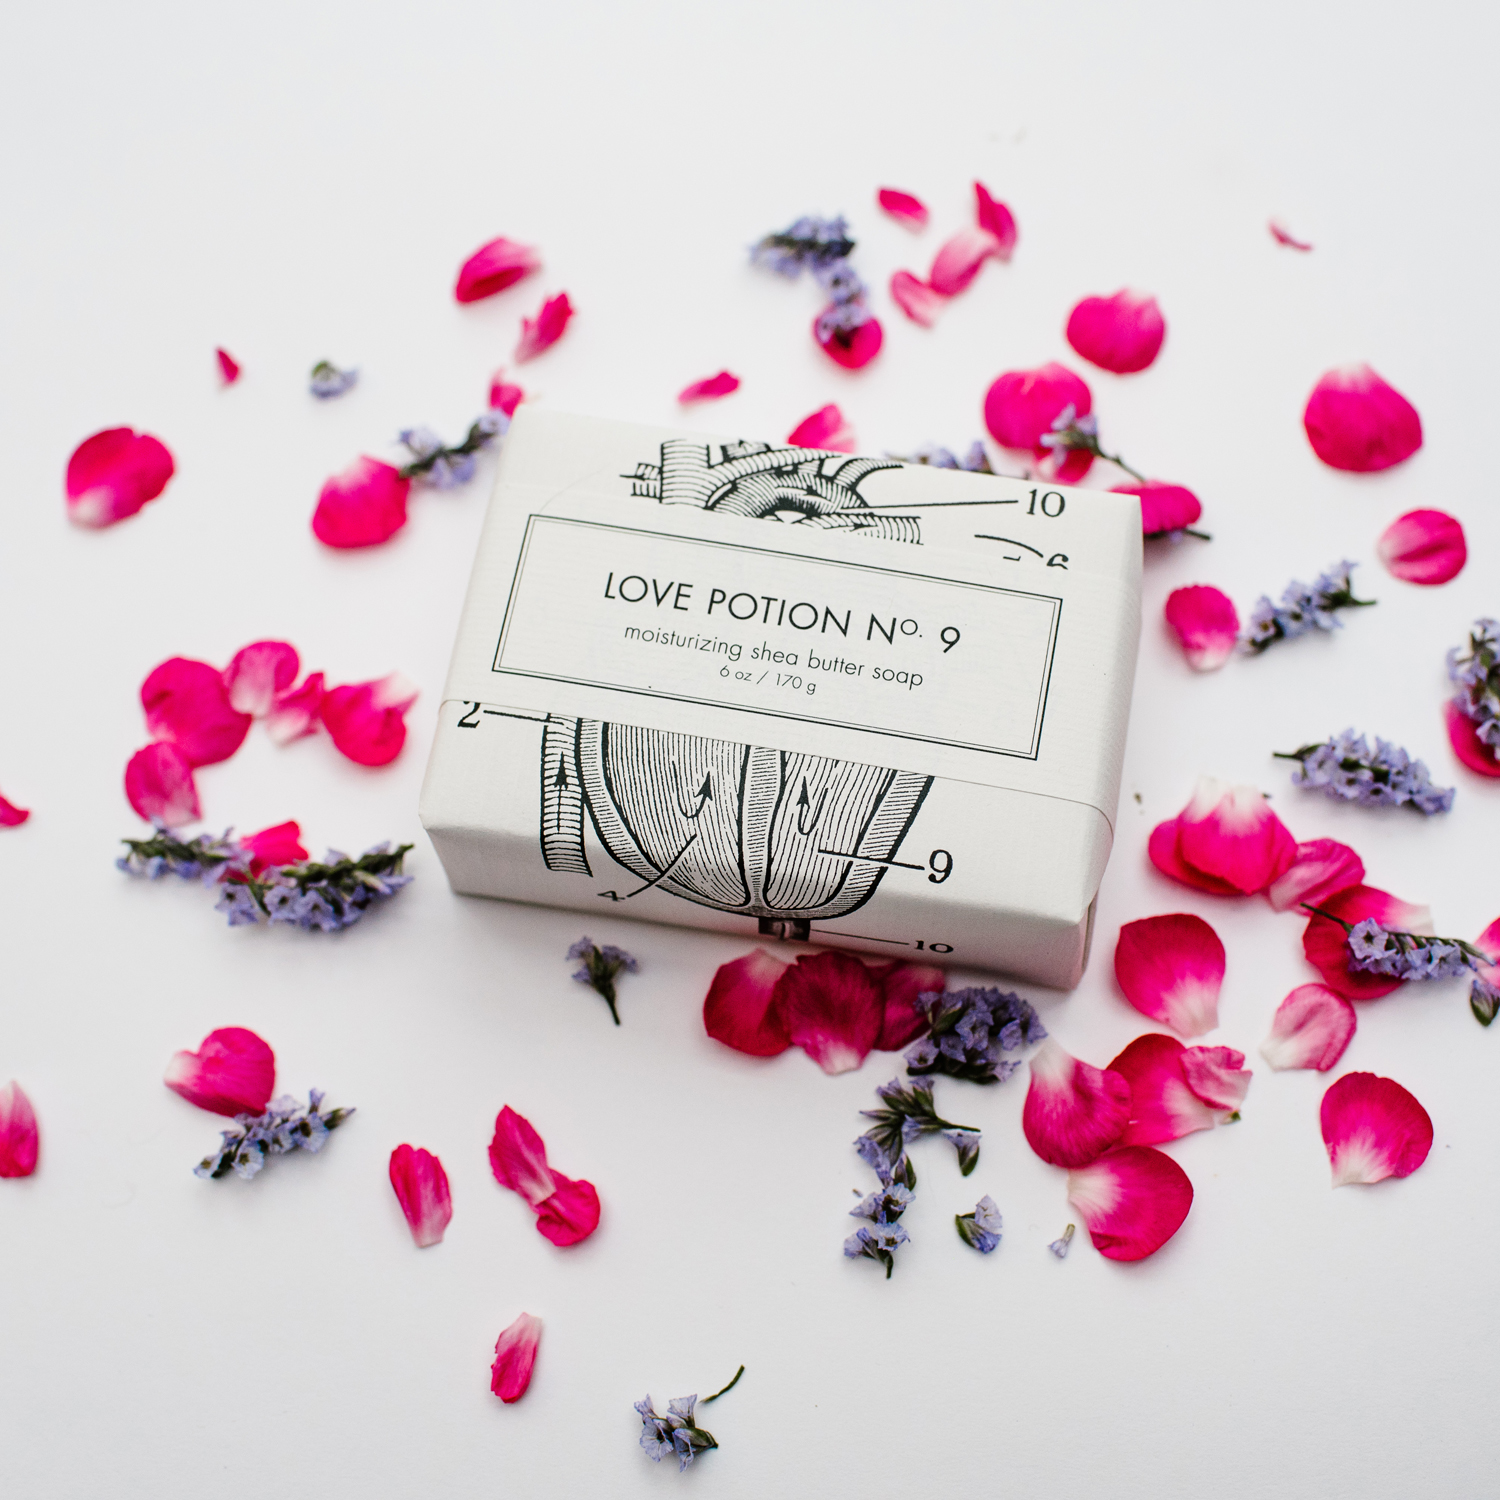 soap bar with flower petals around